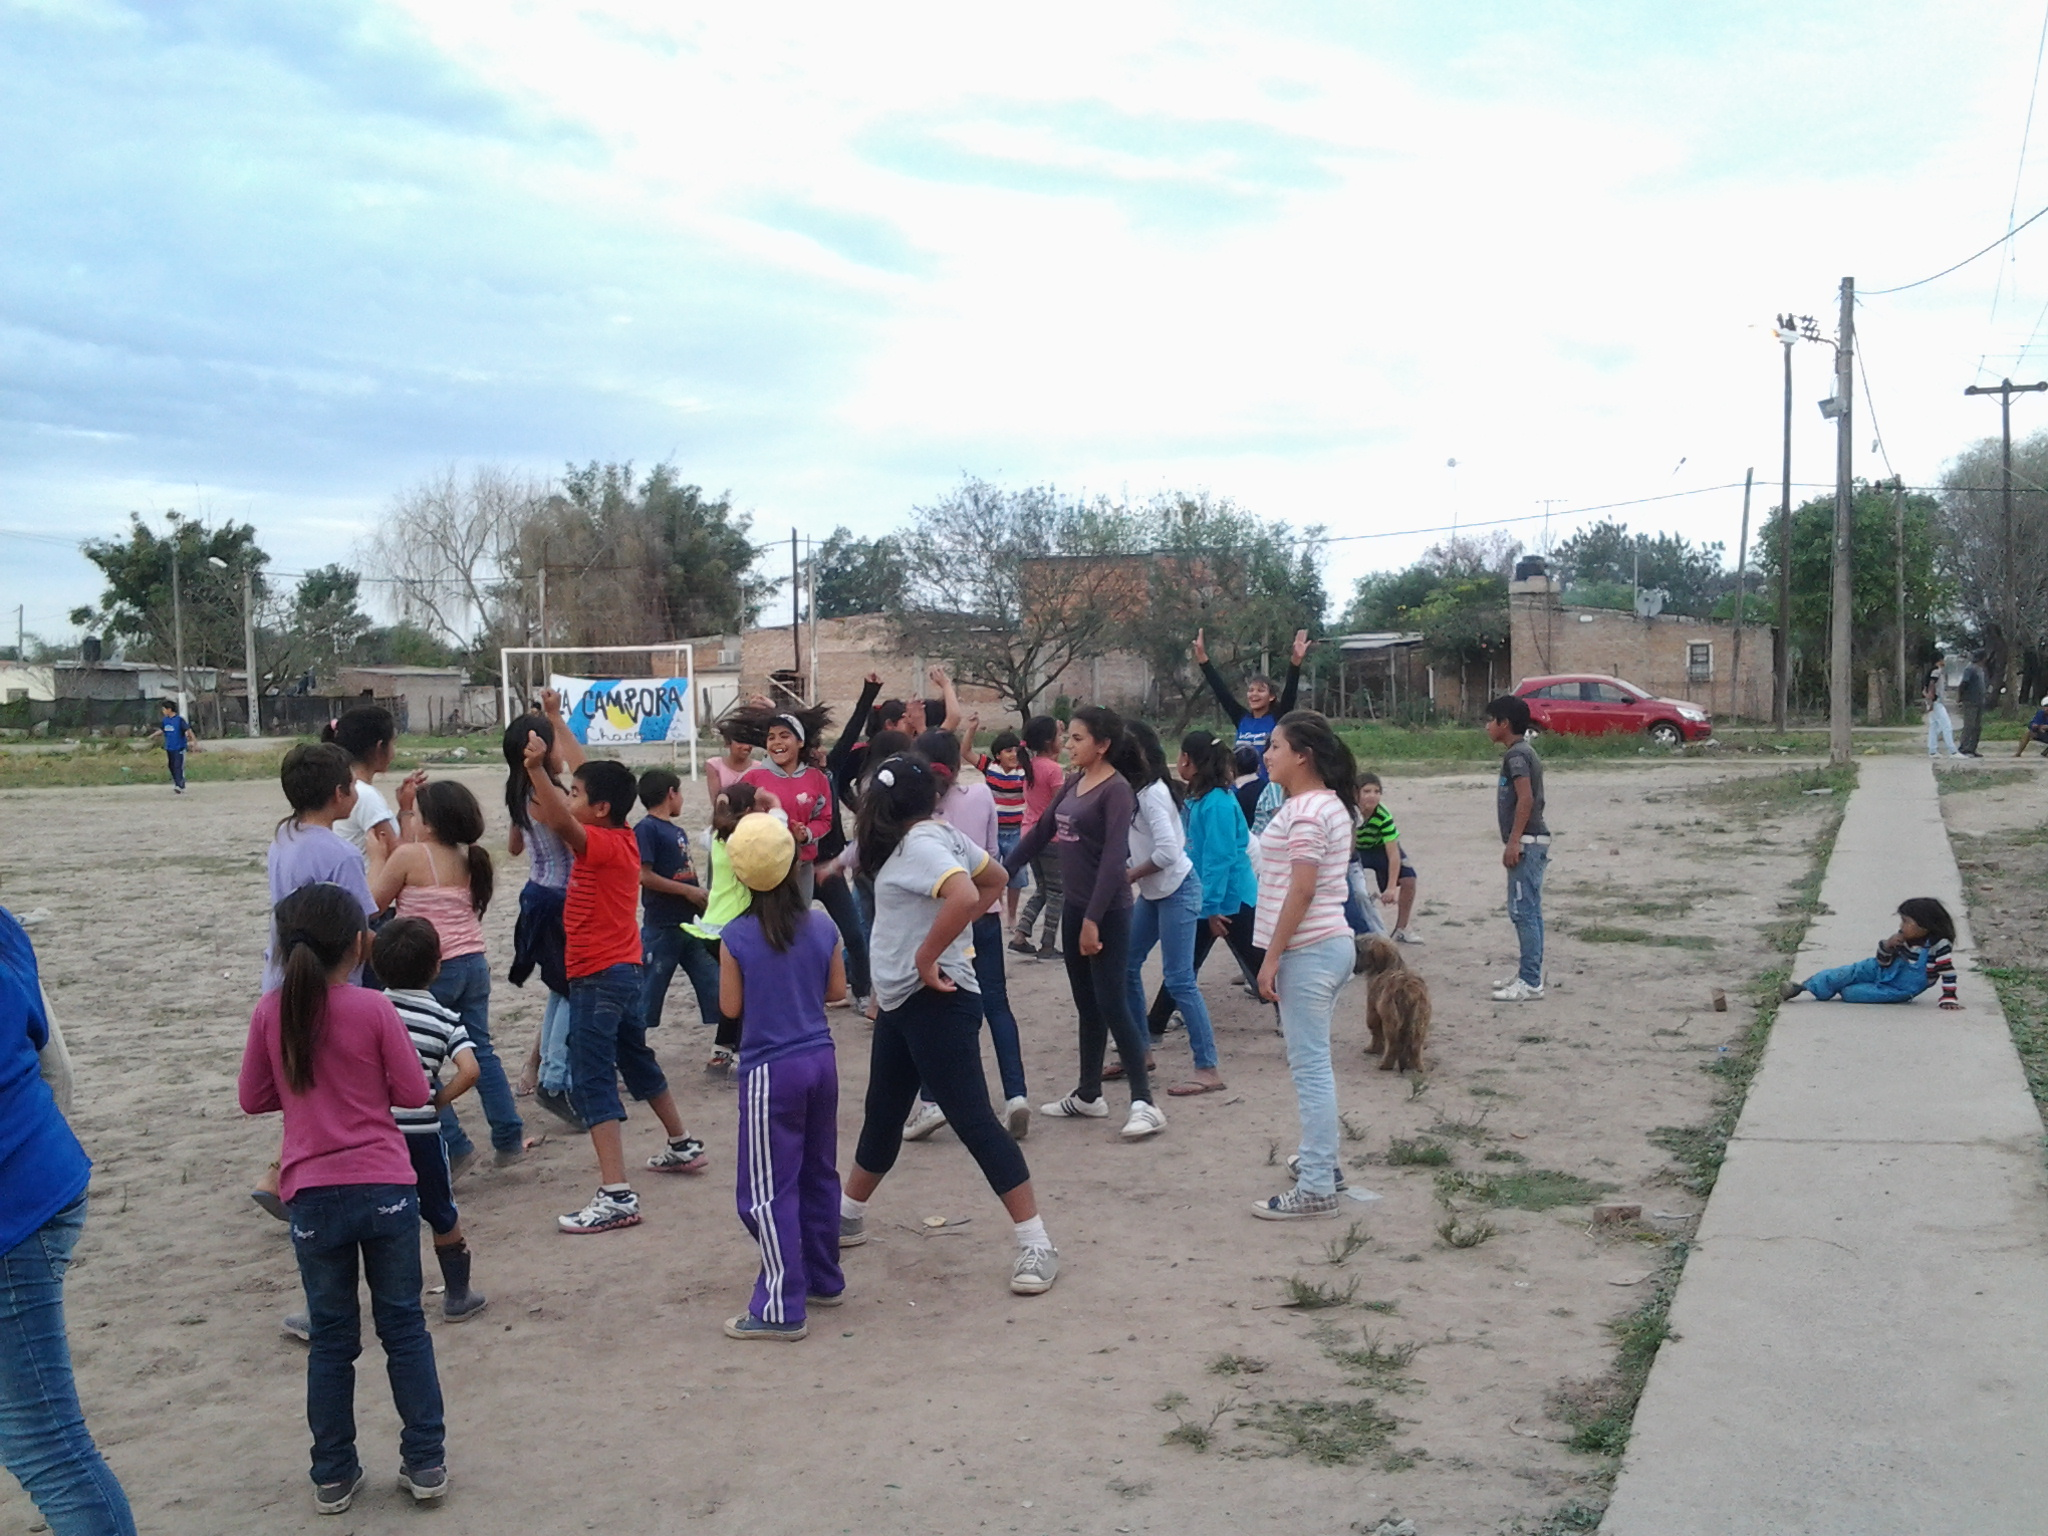 Recreación, Mural y Educación Sexual y Reproductiva, en Chaco